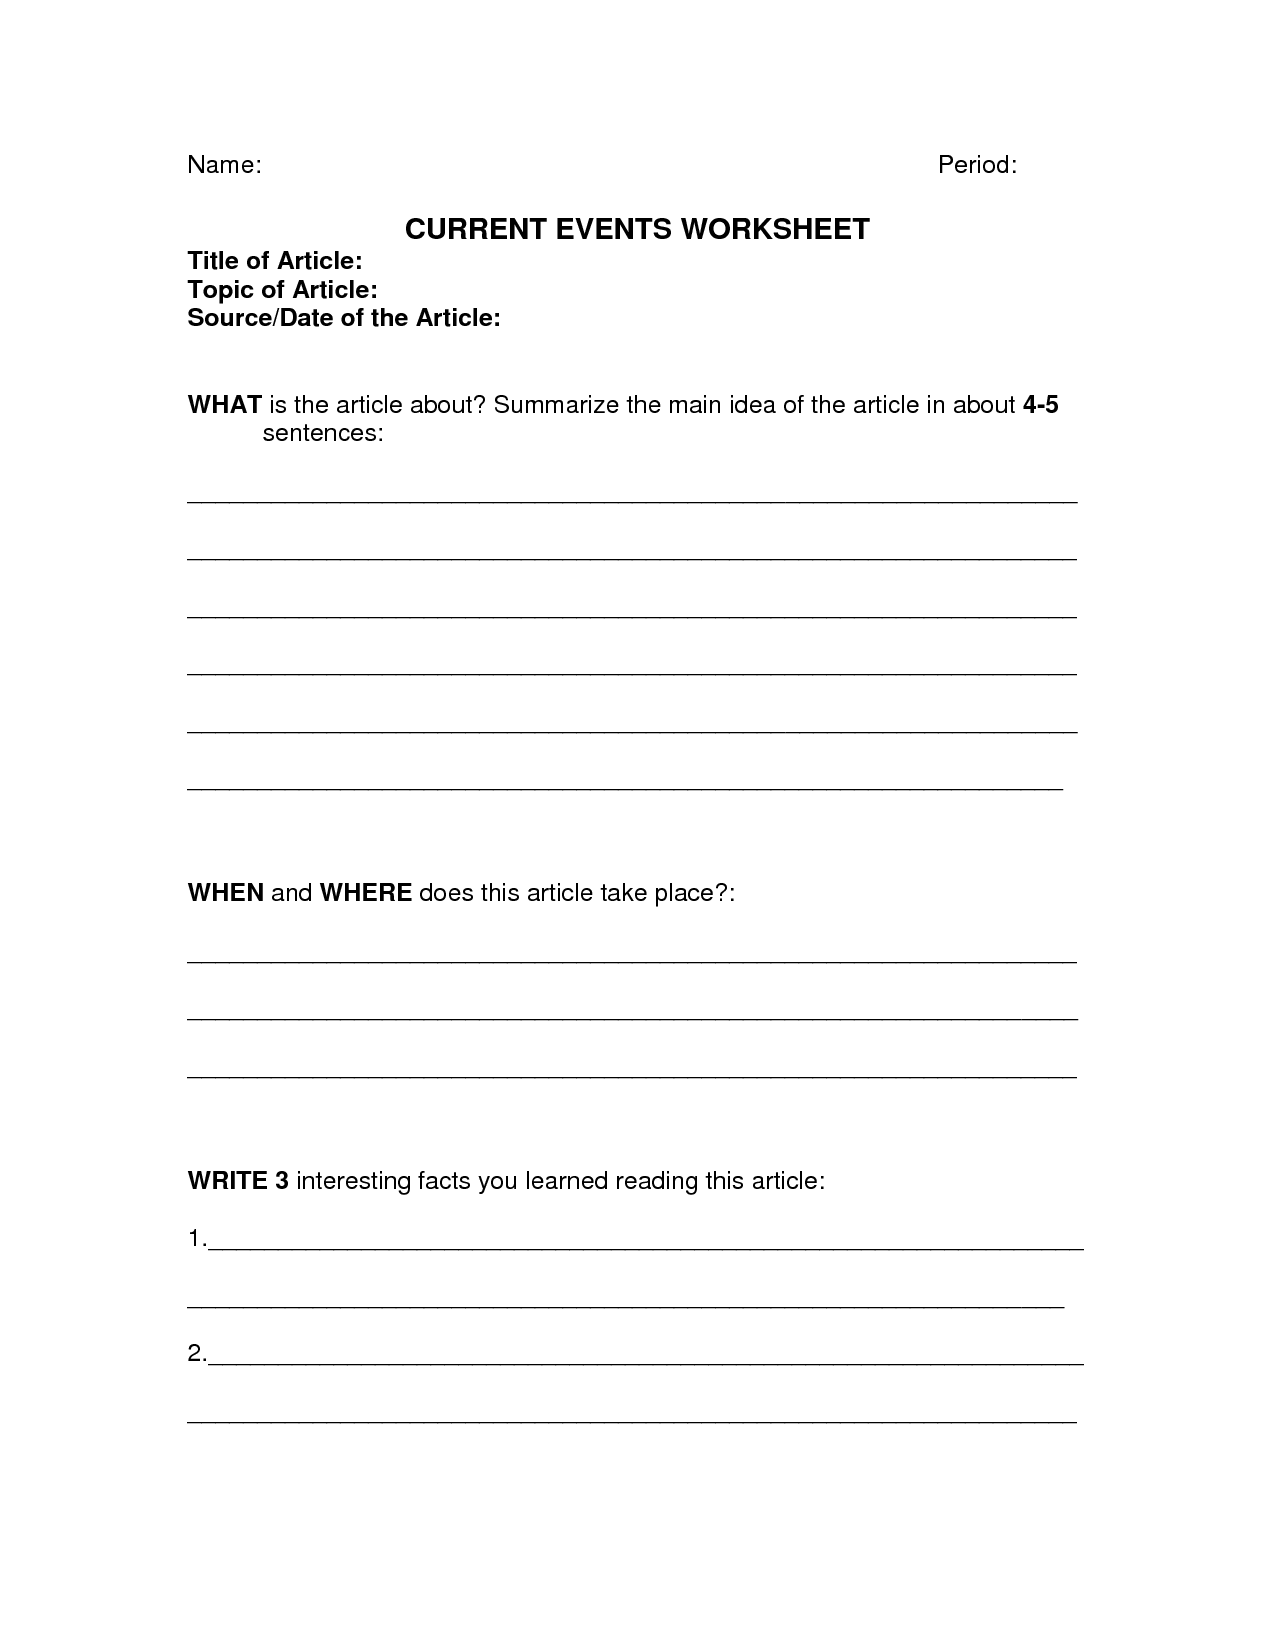 35 Current Events Worksheet Answers